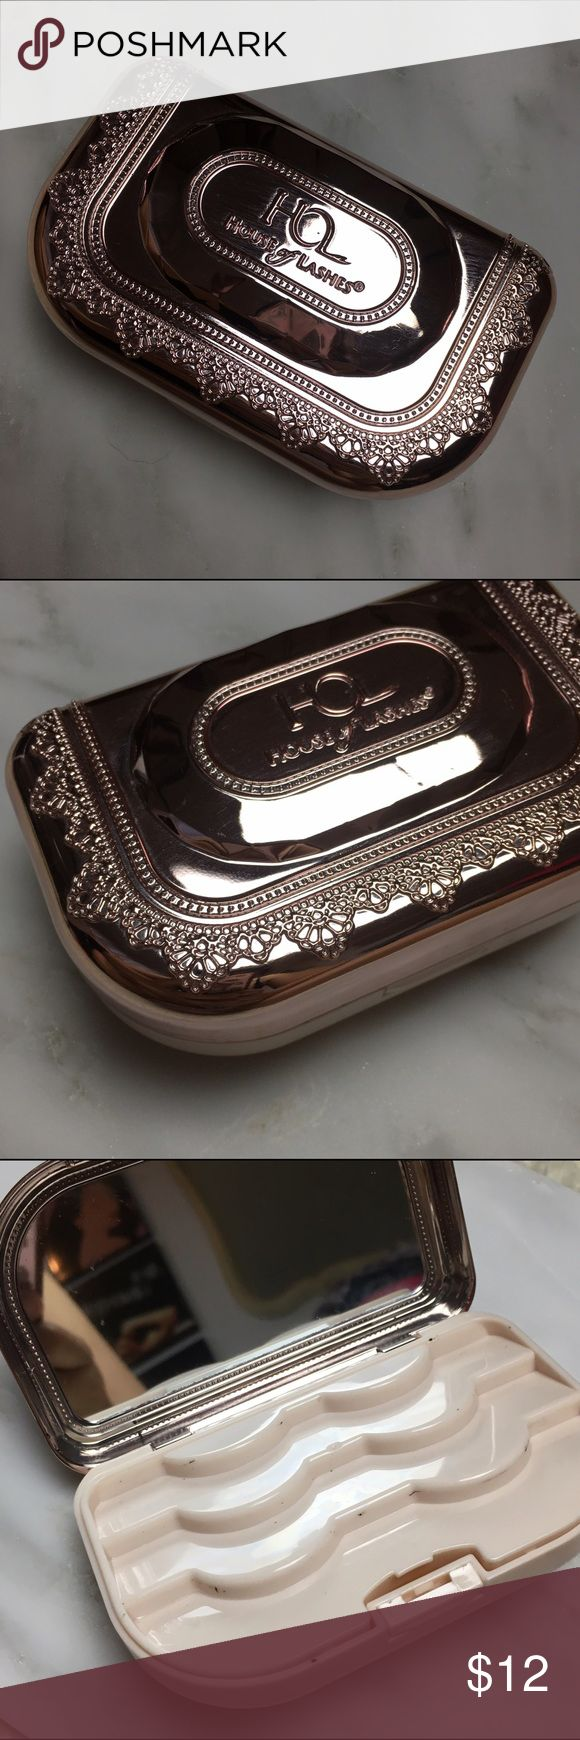 House Of Lashes Precious Gem Case Rose Gold Give your treasured items a home to feel cherished and secure! This double decker eyelash case features room to hold three pairs of fake lashes on the first layer, then stashed away beneath this layer, the perfect spot to hold our 3ml lash glue bottle with a little extra room to spare! Case also includes a mirror for applying and removing lashes on the go! Lightweight, portable, and eye-catching, this jeweled case is a brilliant keepsake for your…